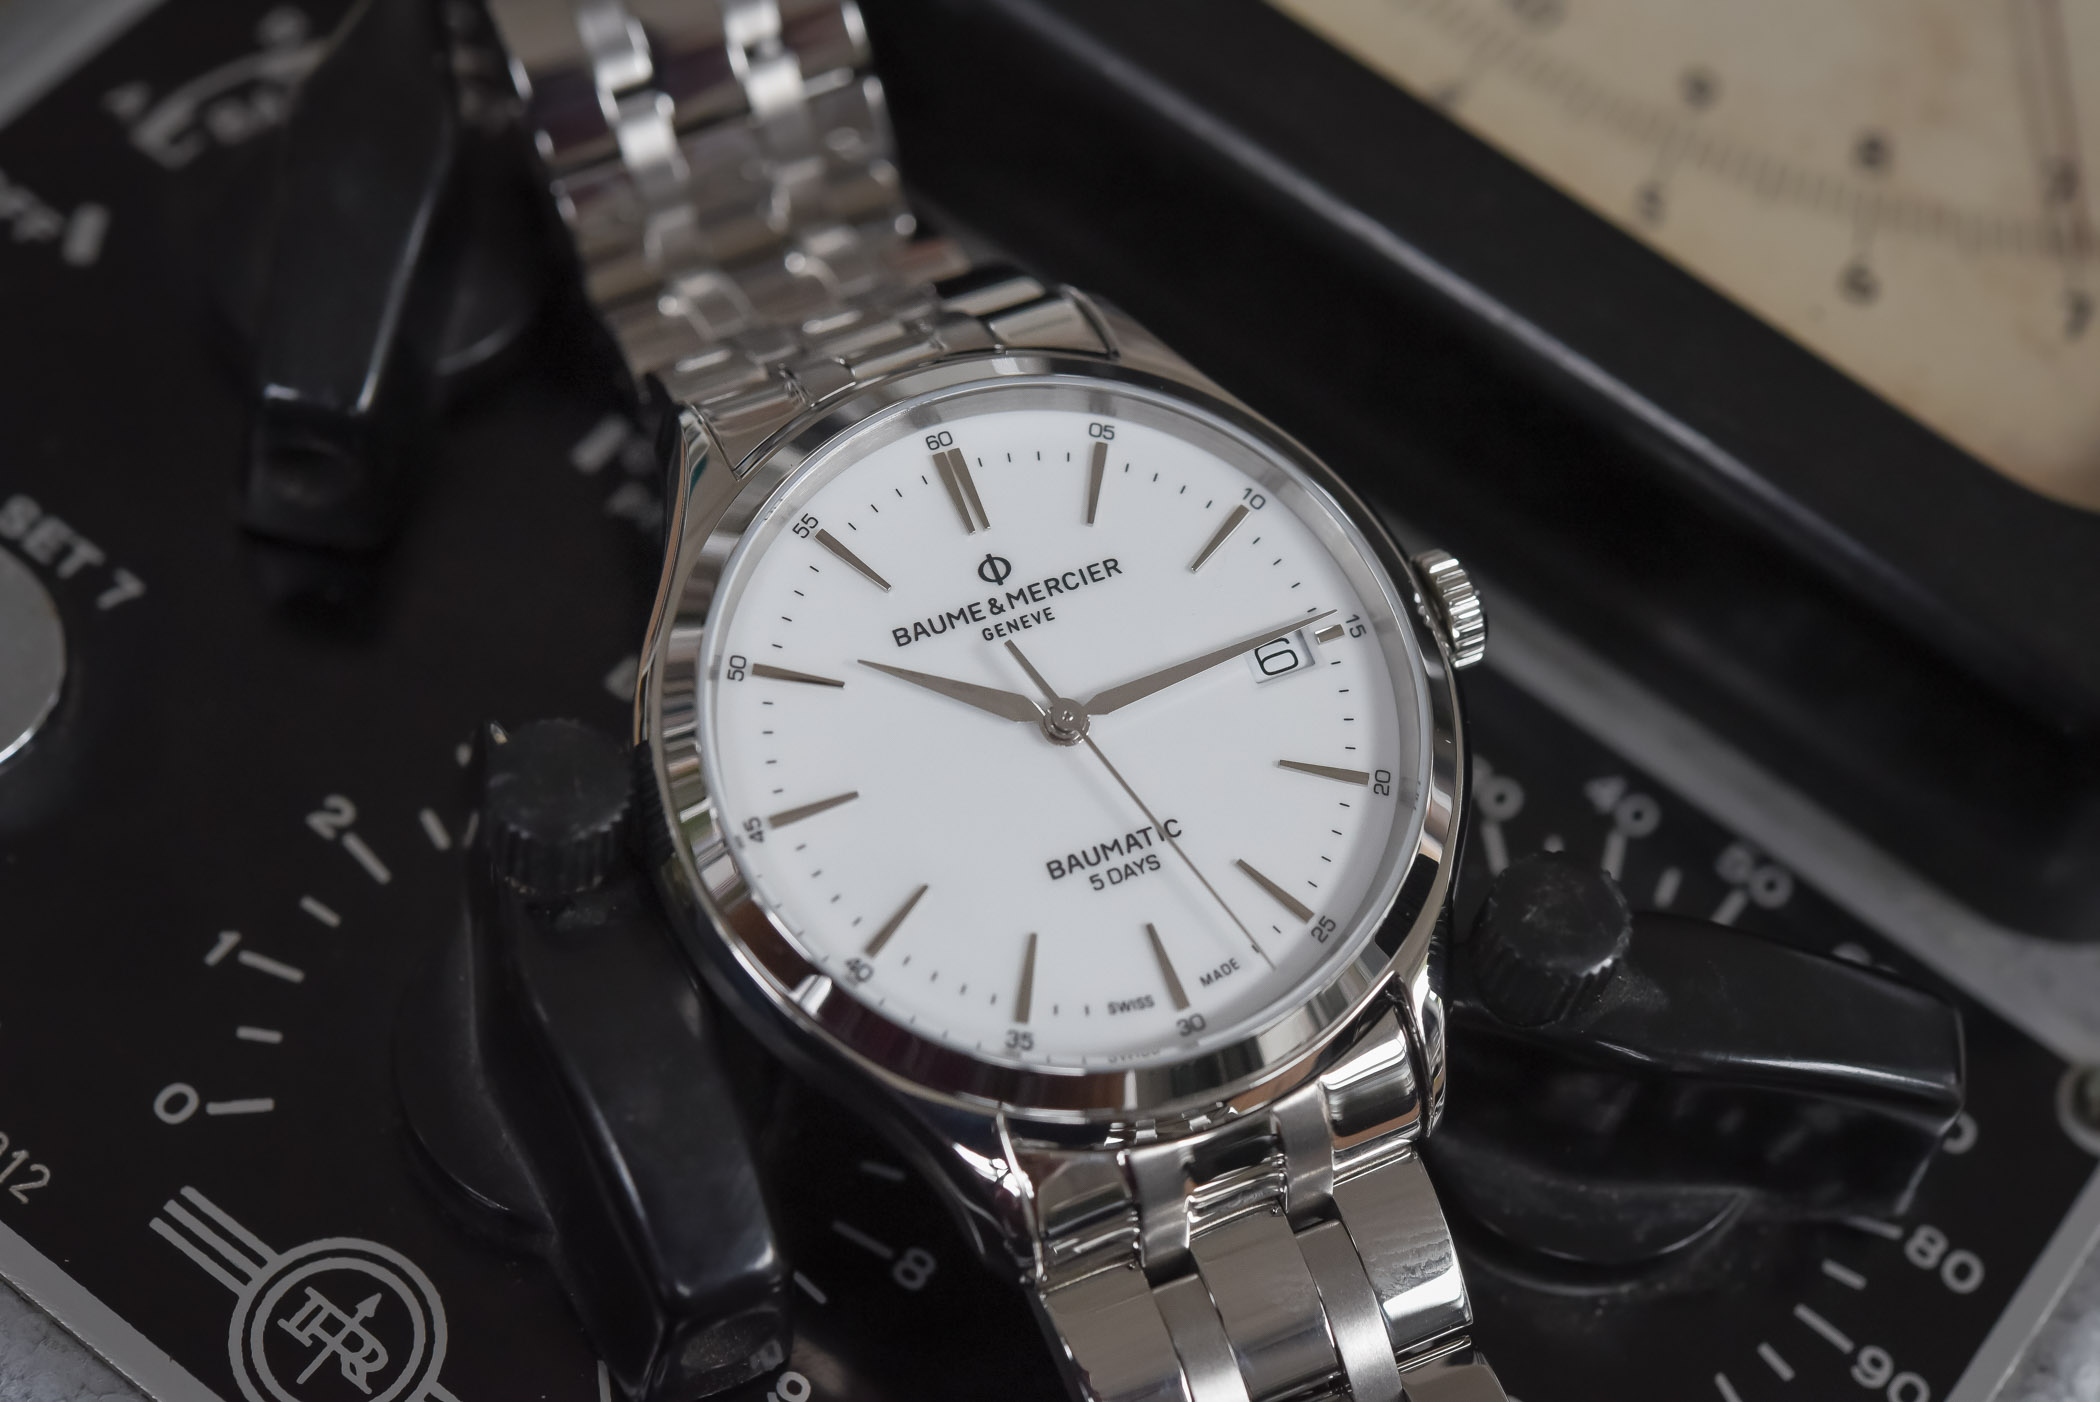 973f44ab4a97 Review - Baume et Mercier Clifton Baumatic (non-COSC version